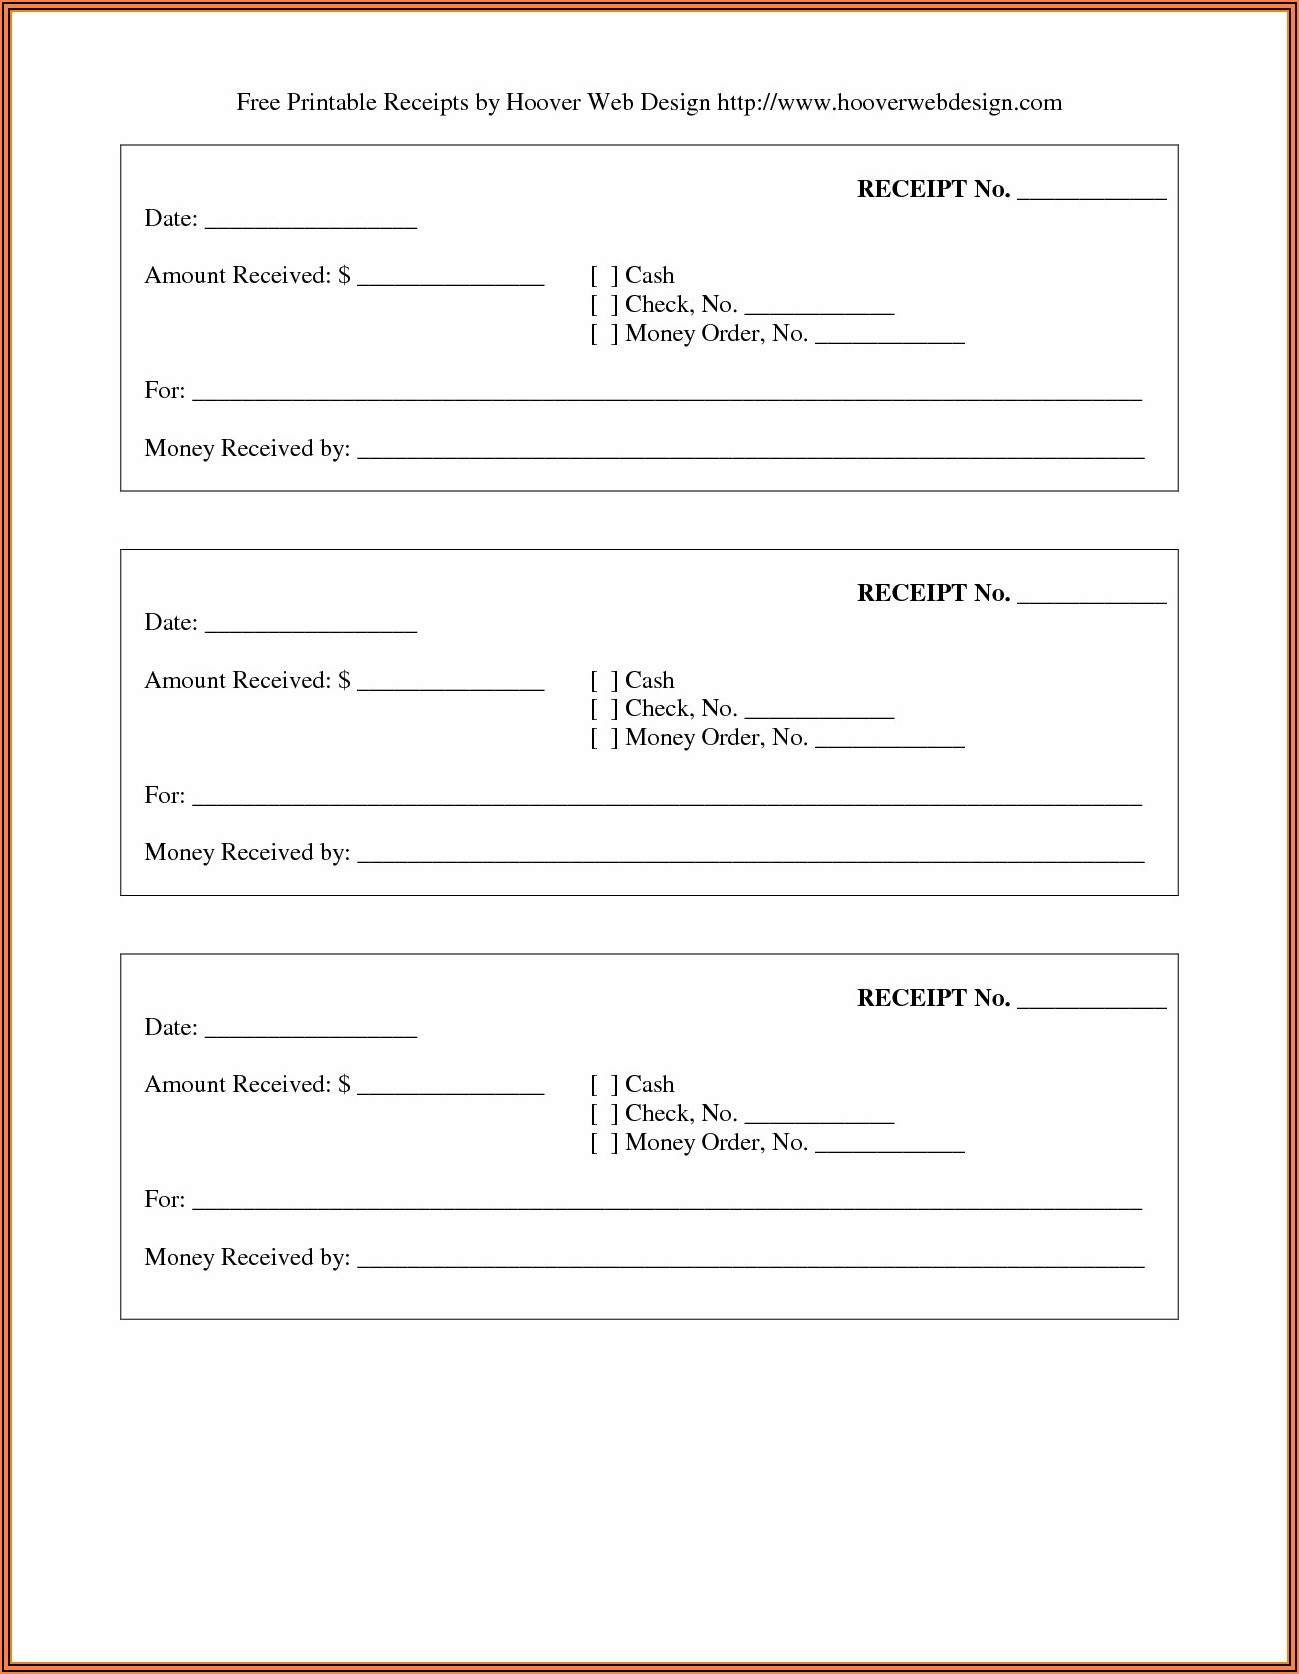 Download Printable Receipt Forms For Free